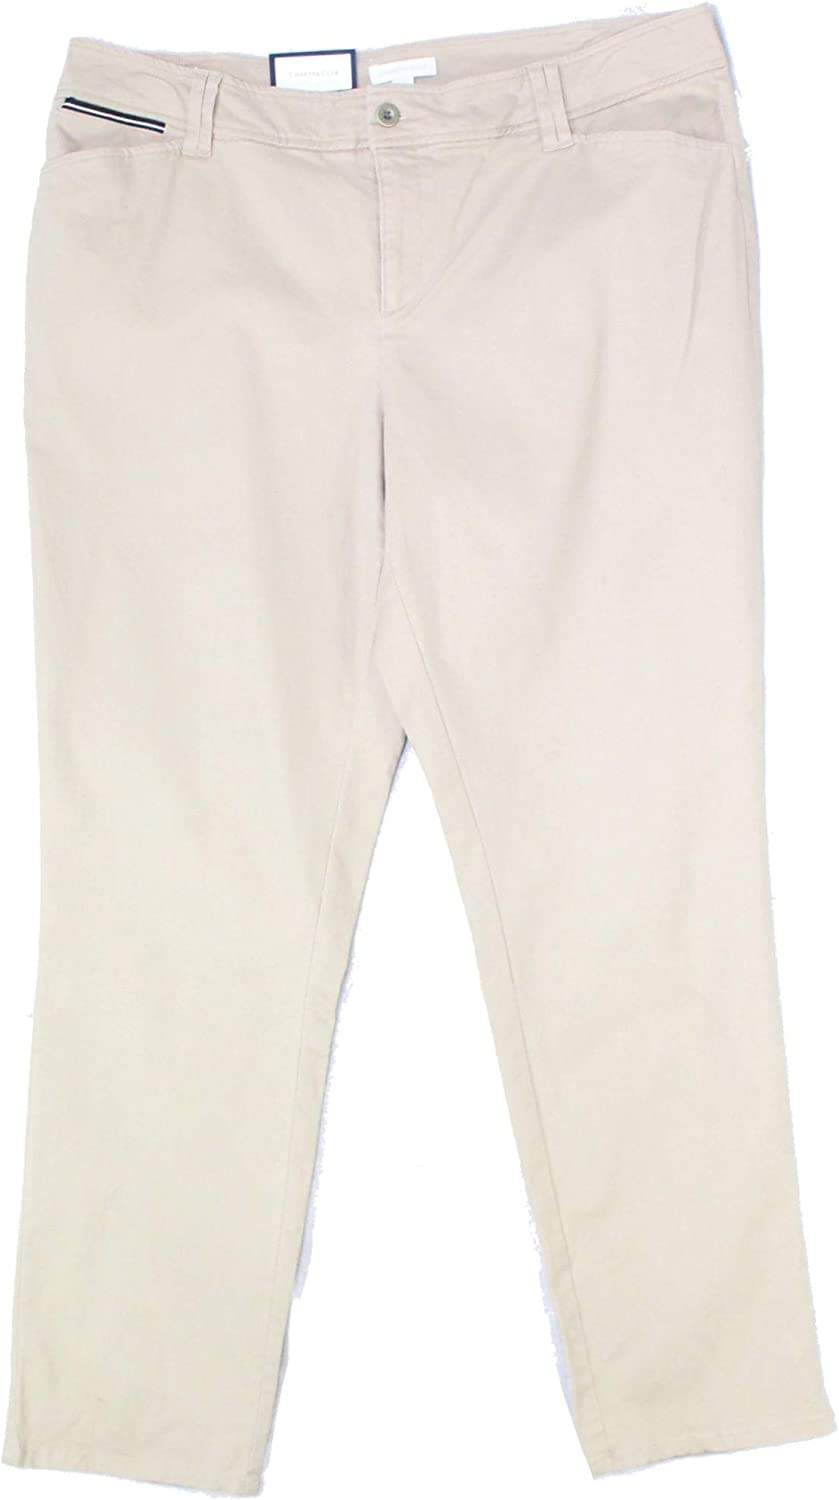 Charter Club Womens Slim Leg High-Rise Chino Pants